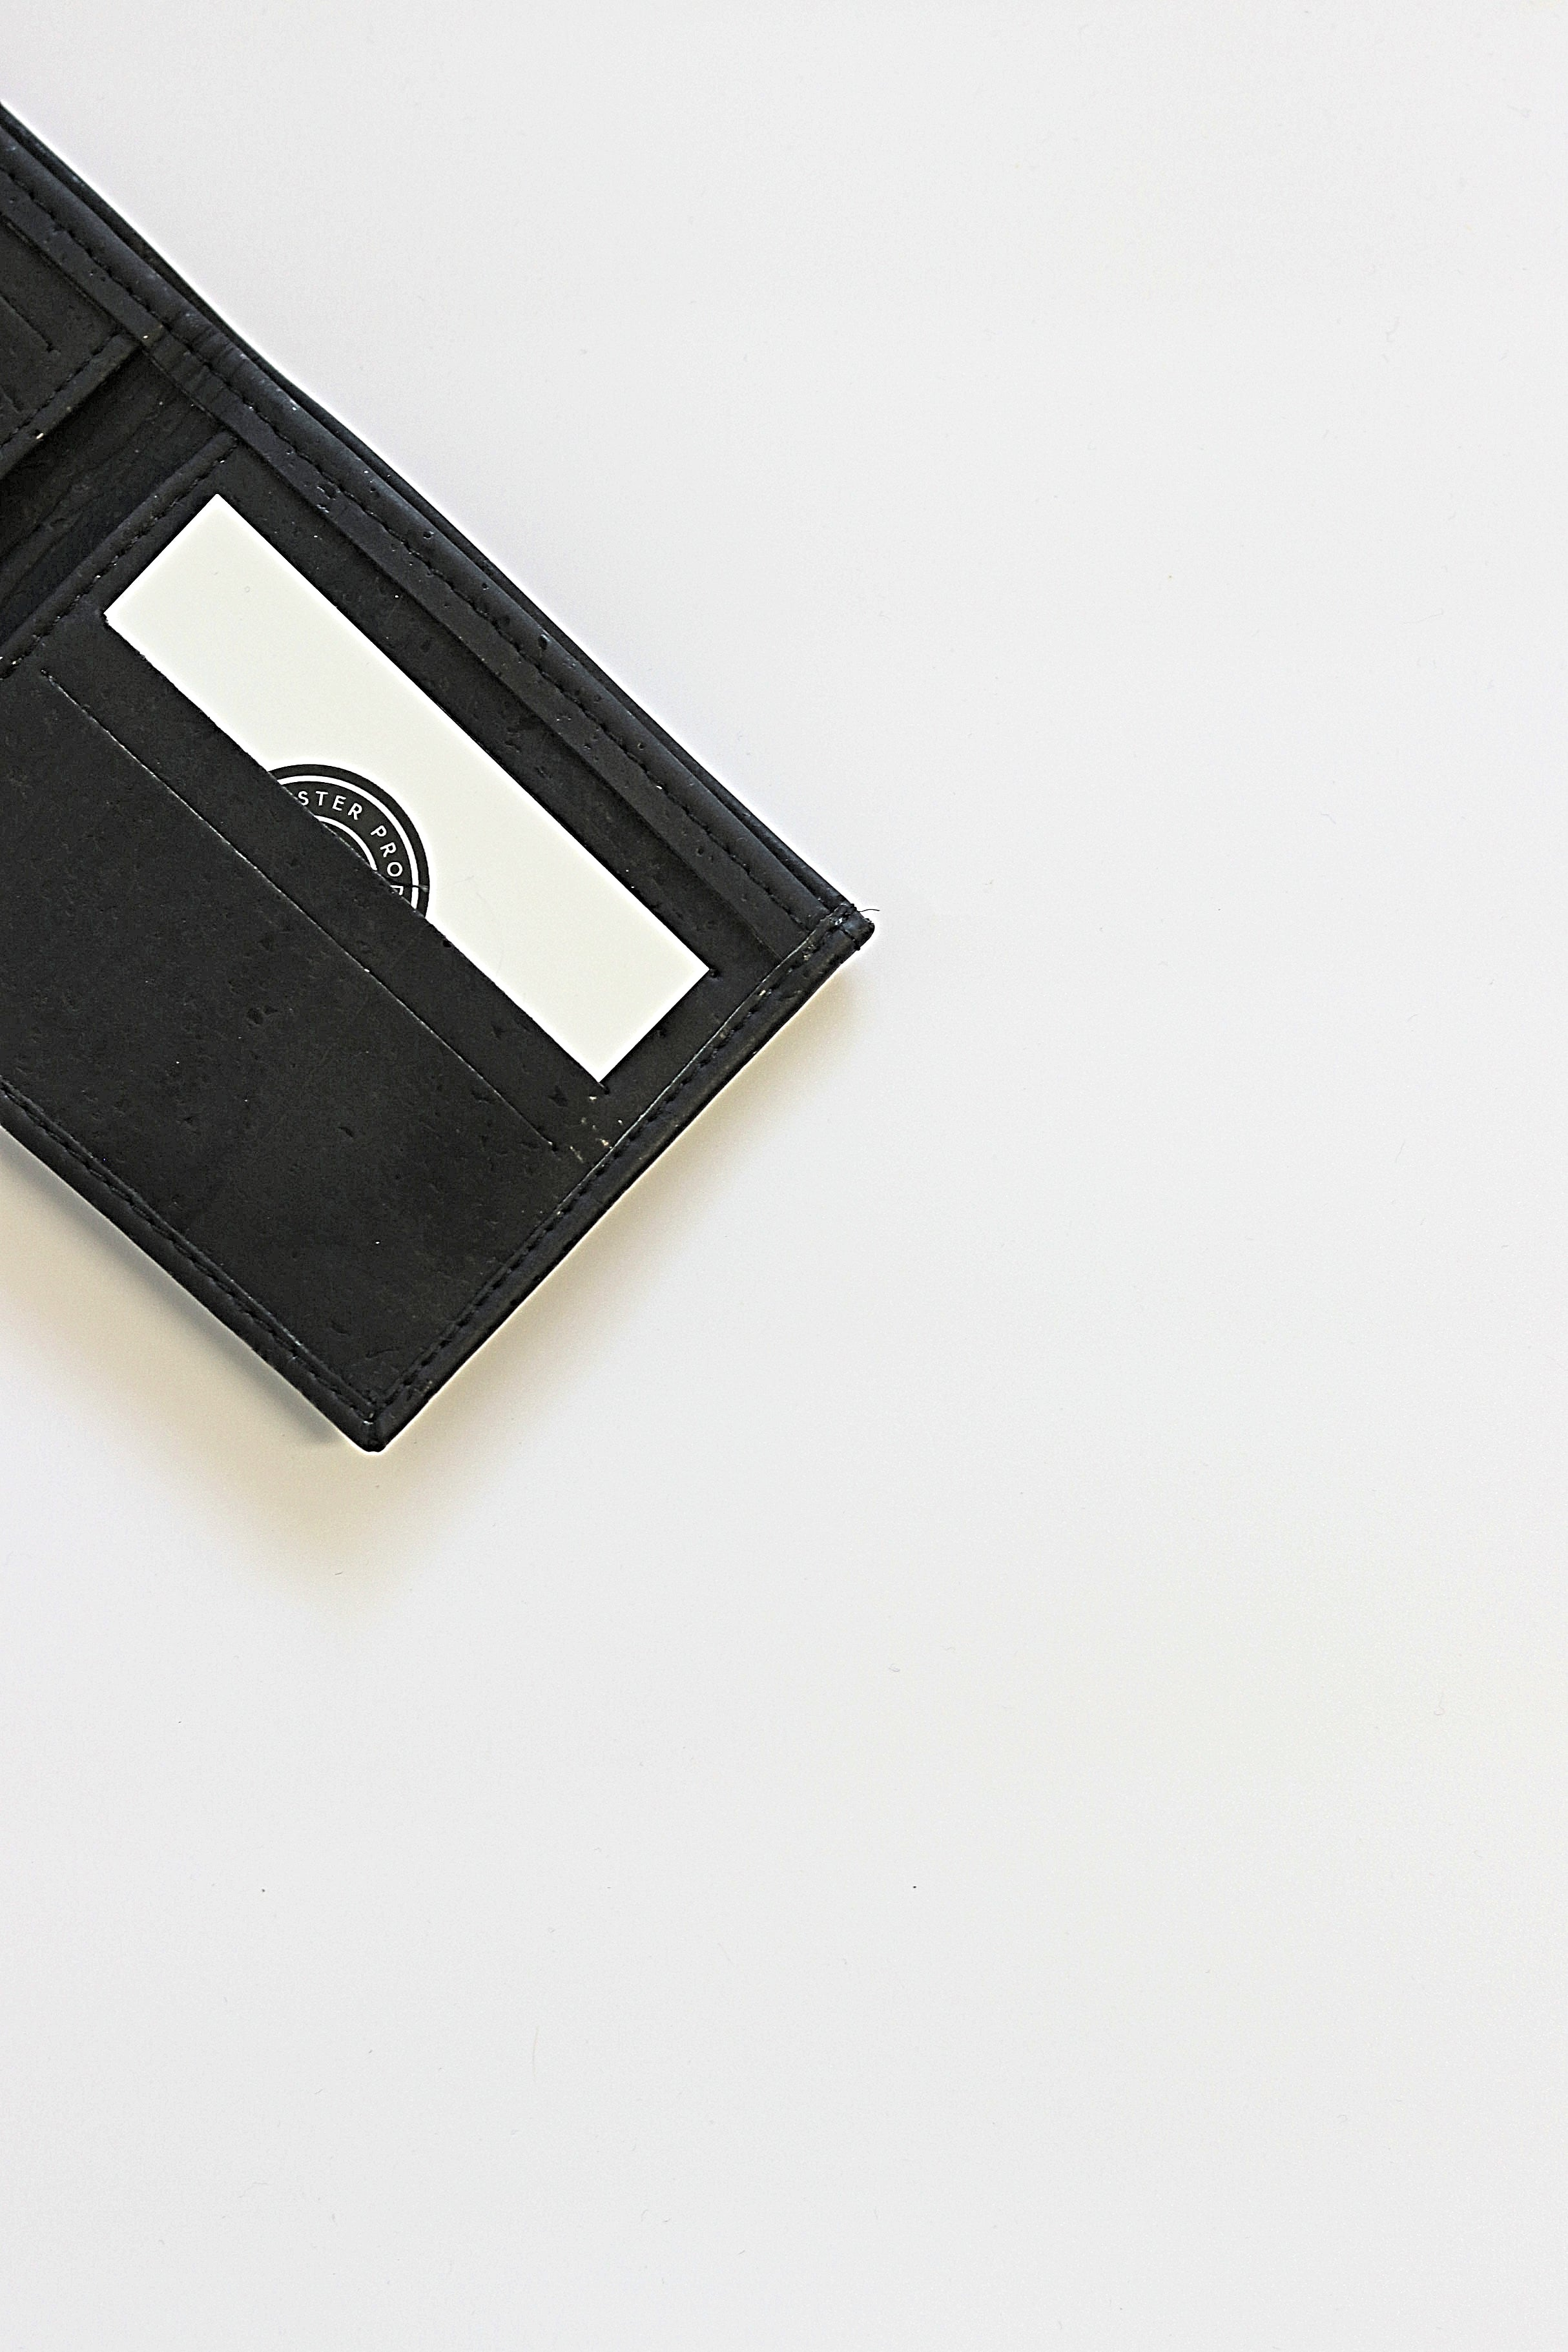 Forester Products black, sustainable, cork, vegan leather bifold wallet open view.